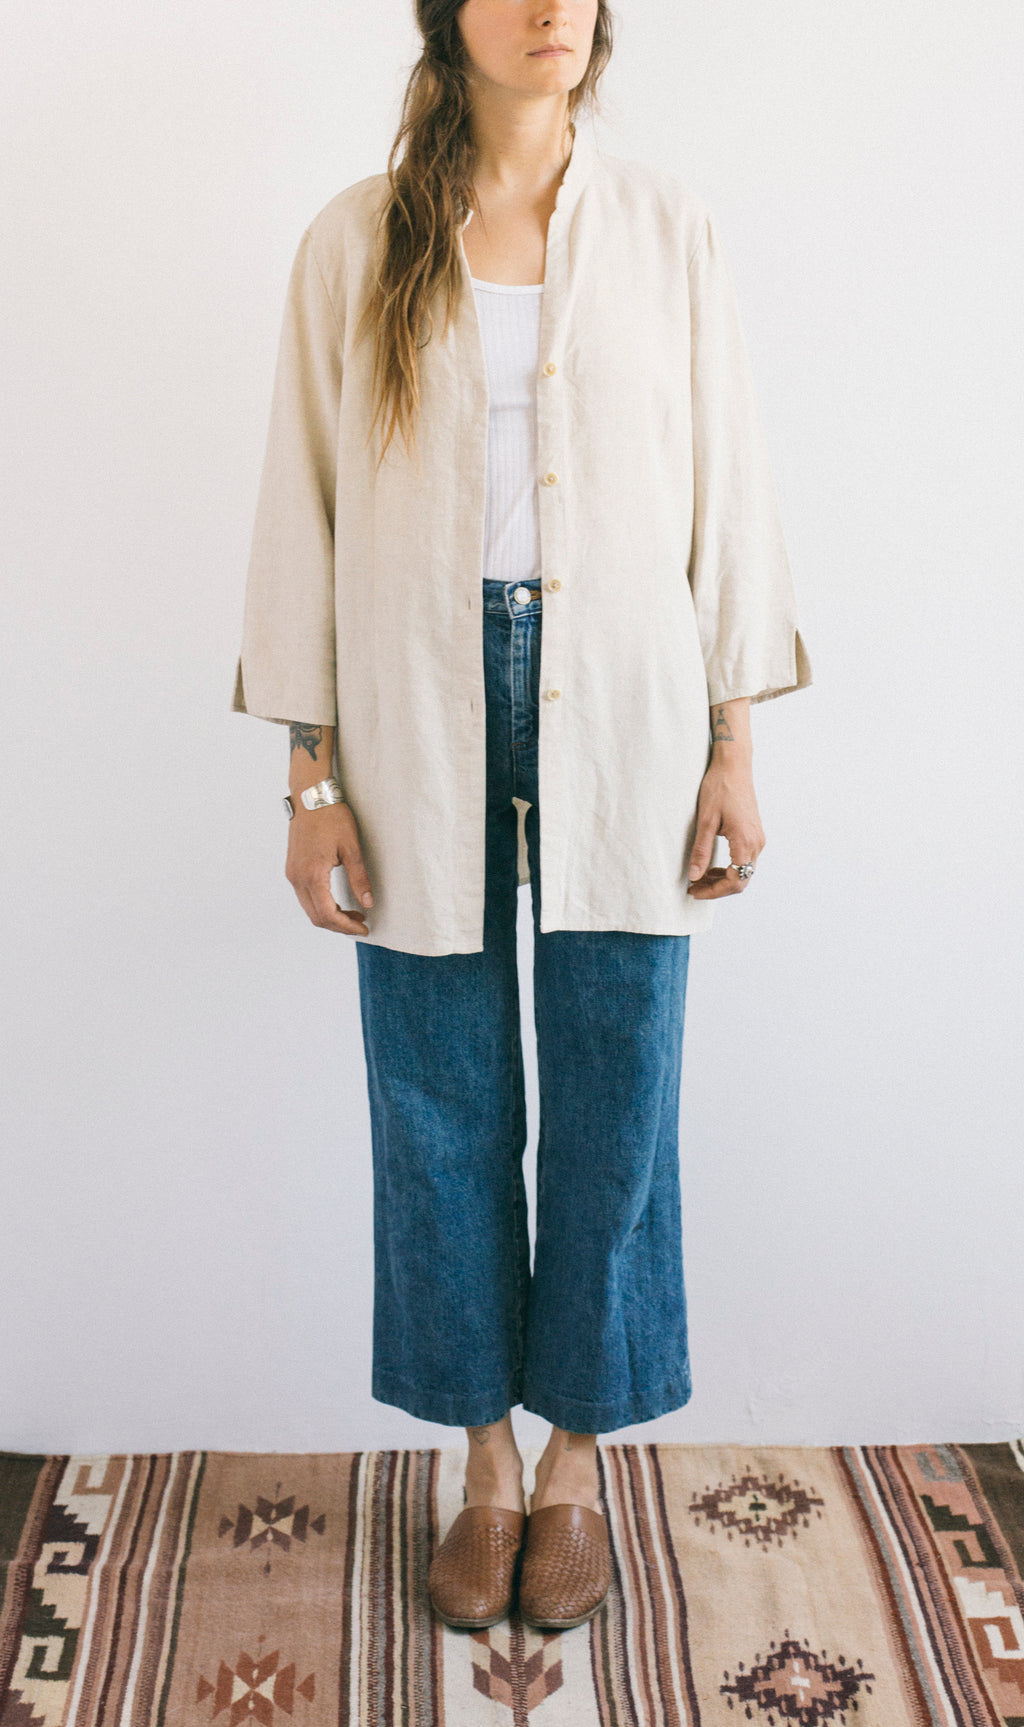 Linen button up Jacket - Femmes des Lunes